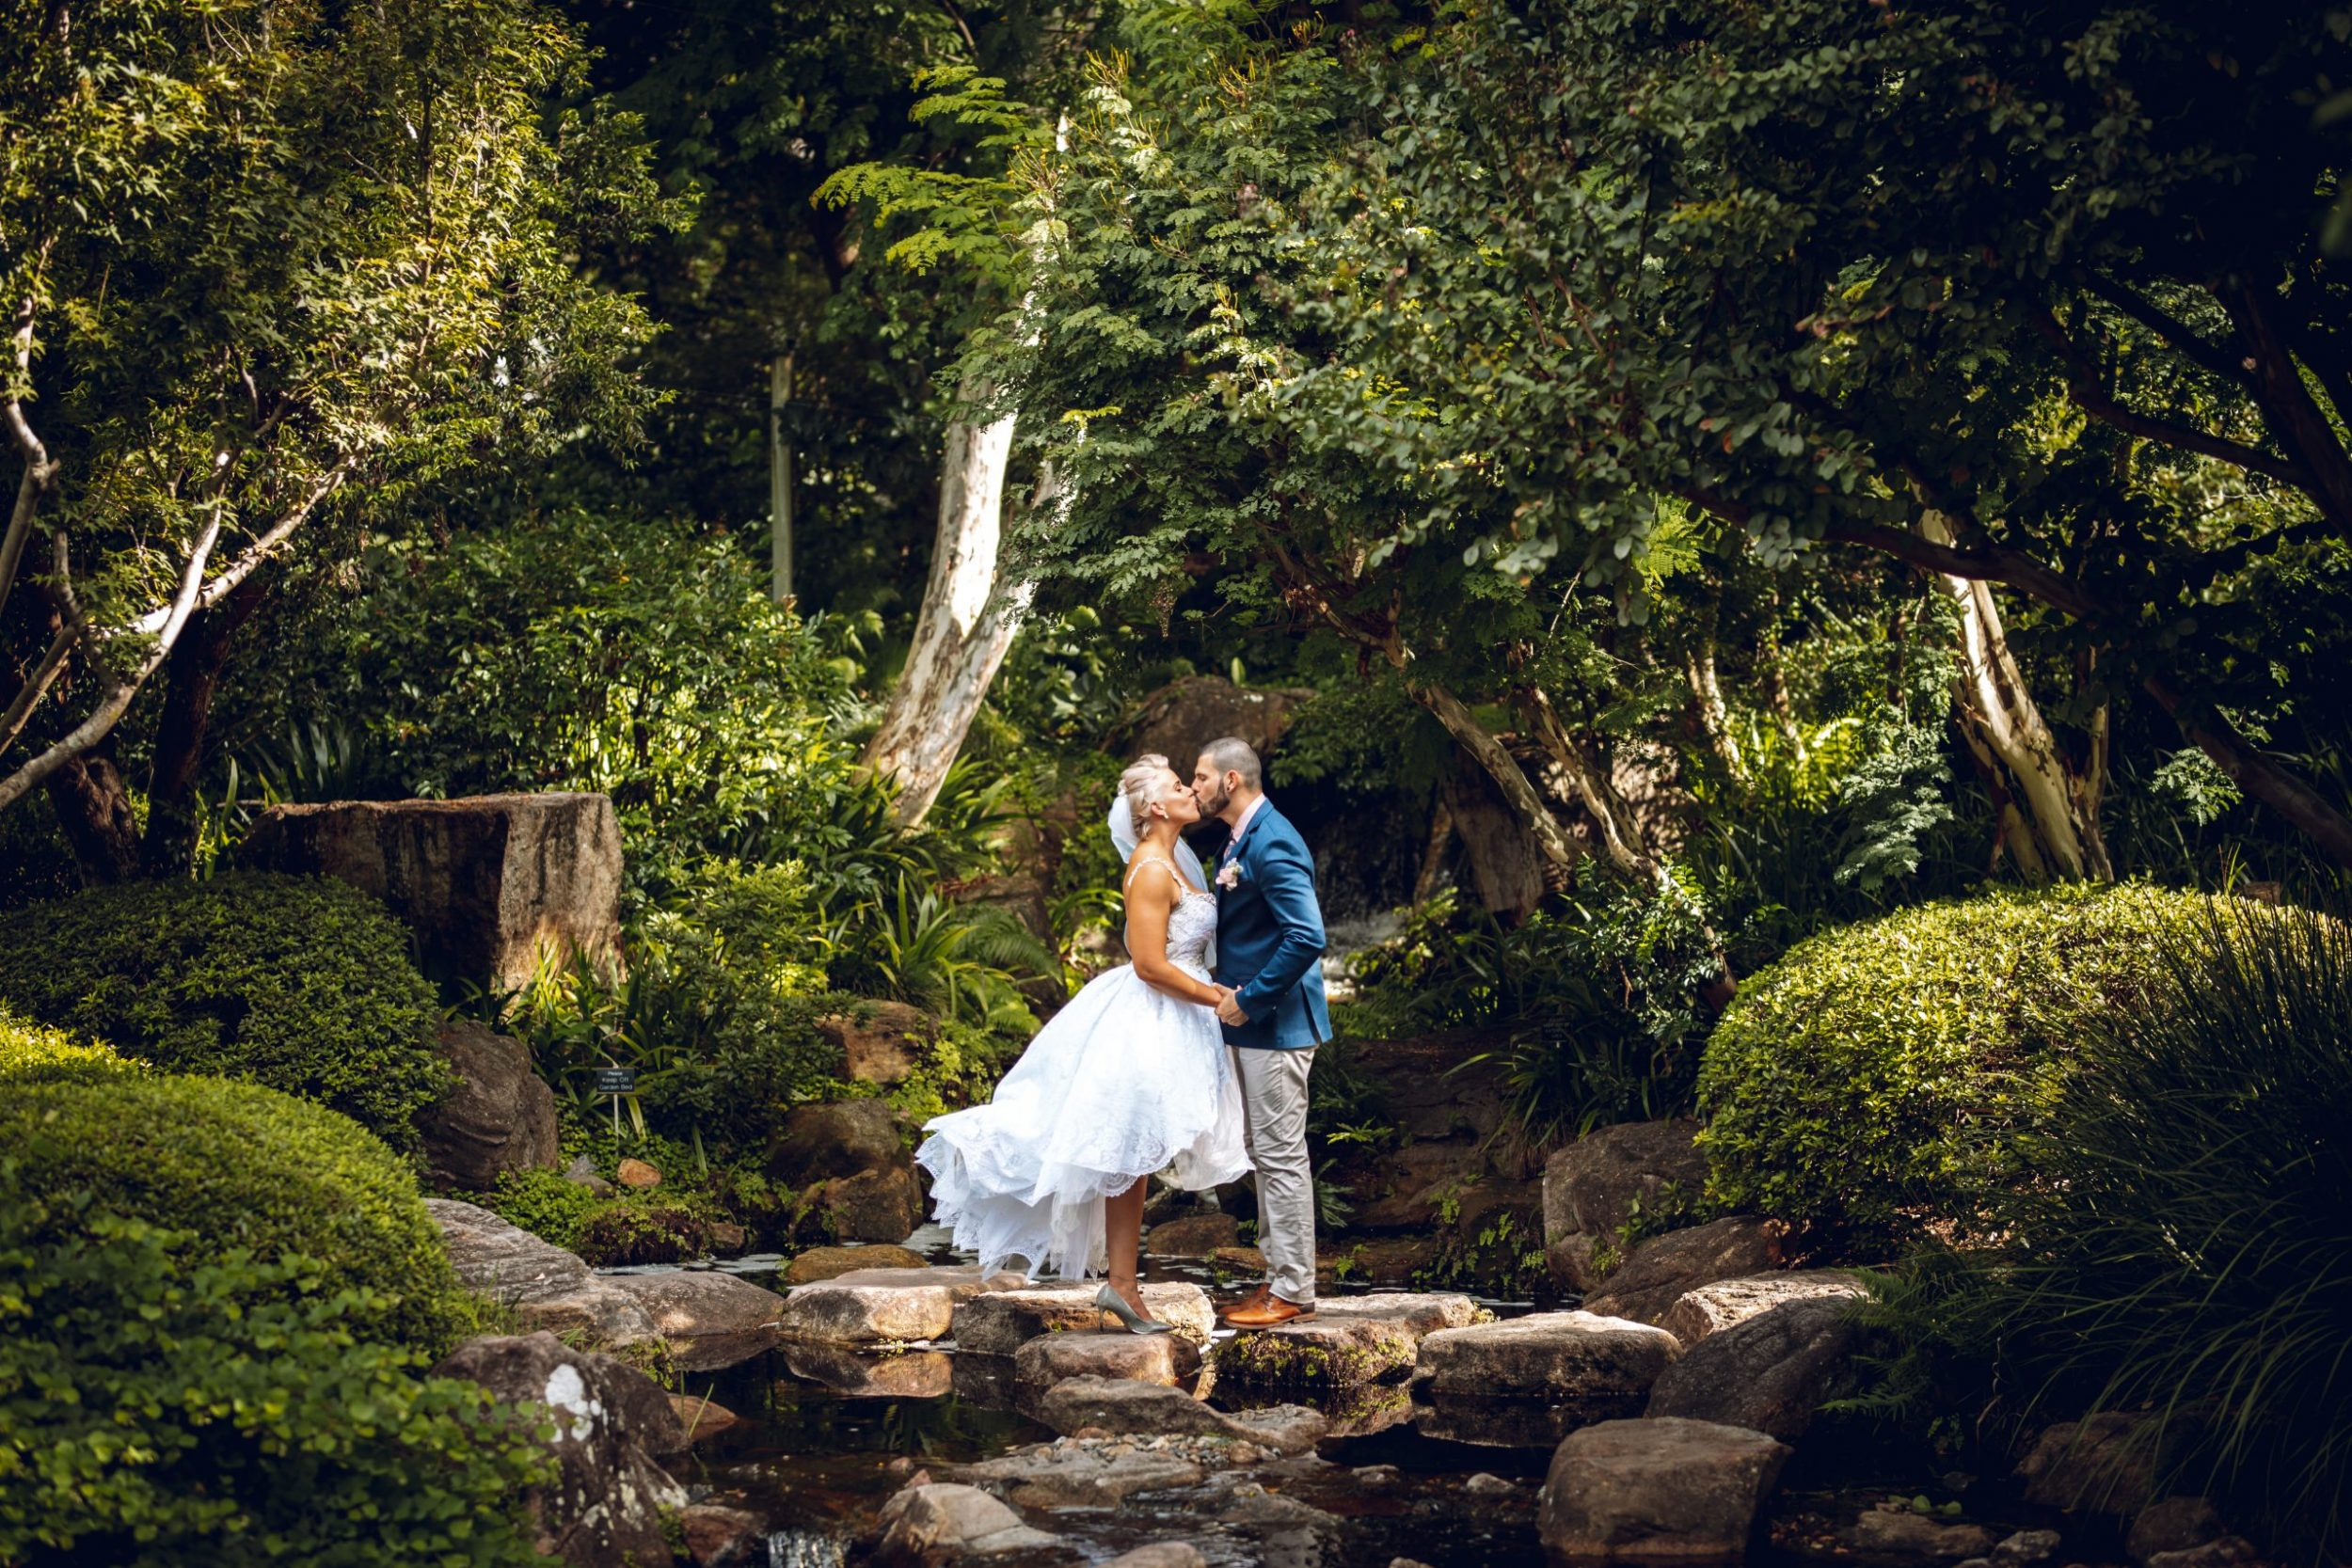 elopement experience packages